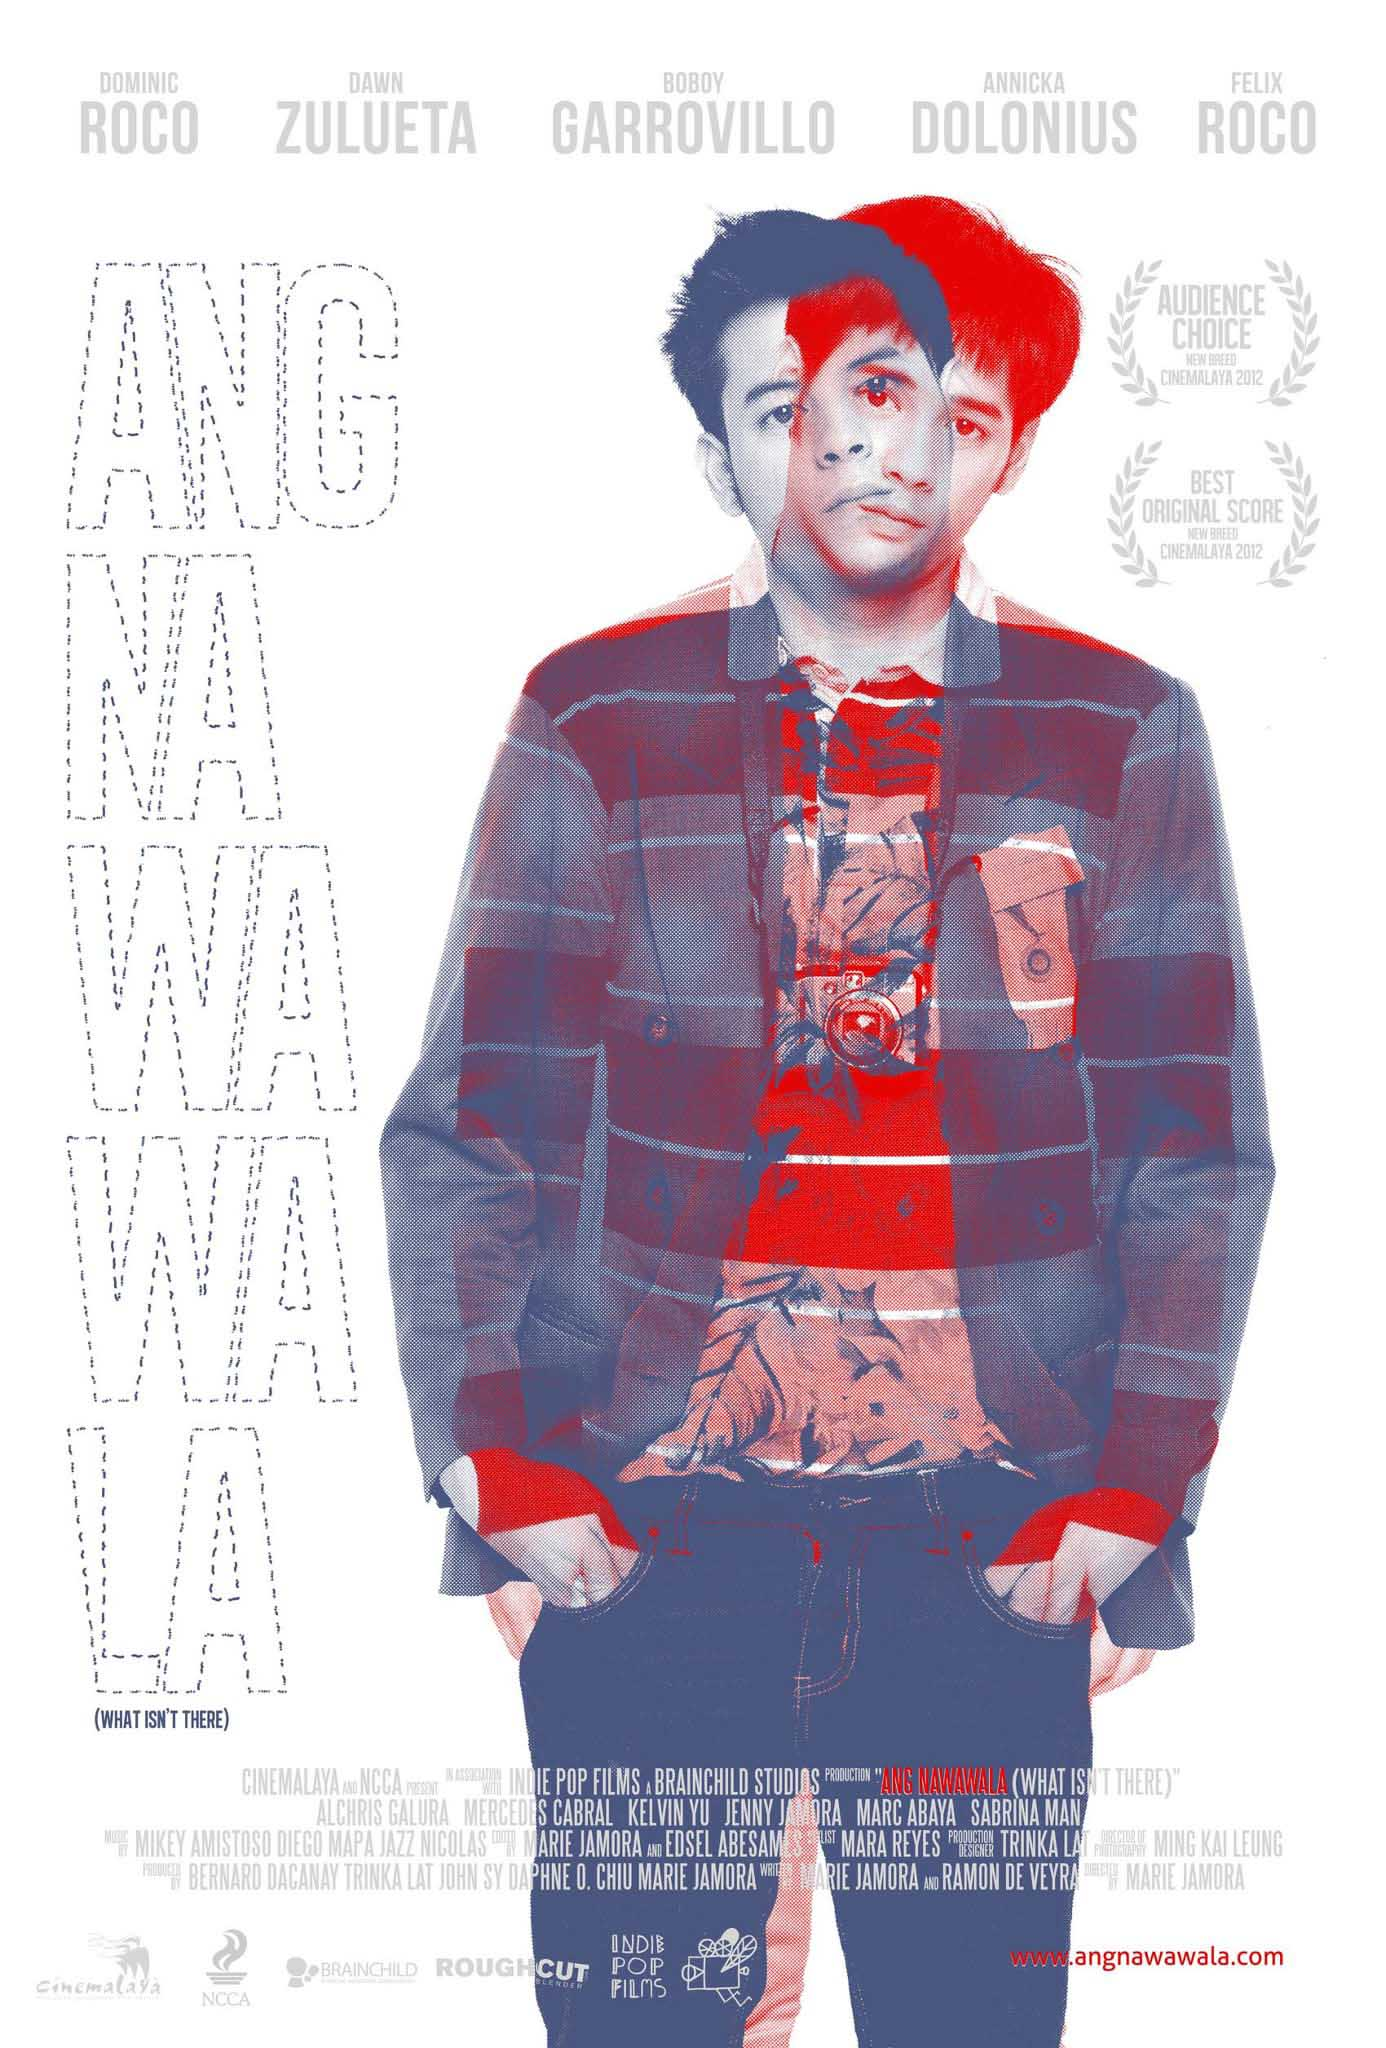 SUCH COOLNESS. Even Ang Nawawala's poster is a keeper. Photo from the movie's Facebook page.